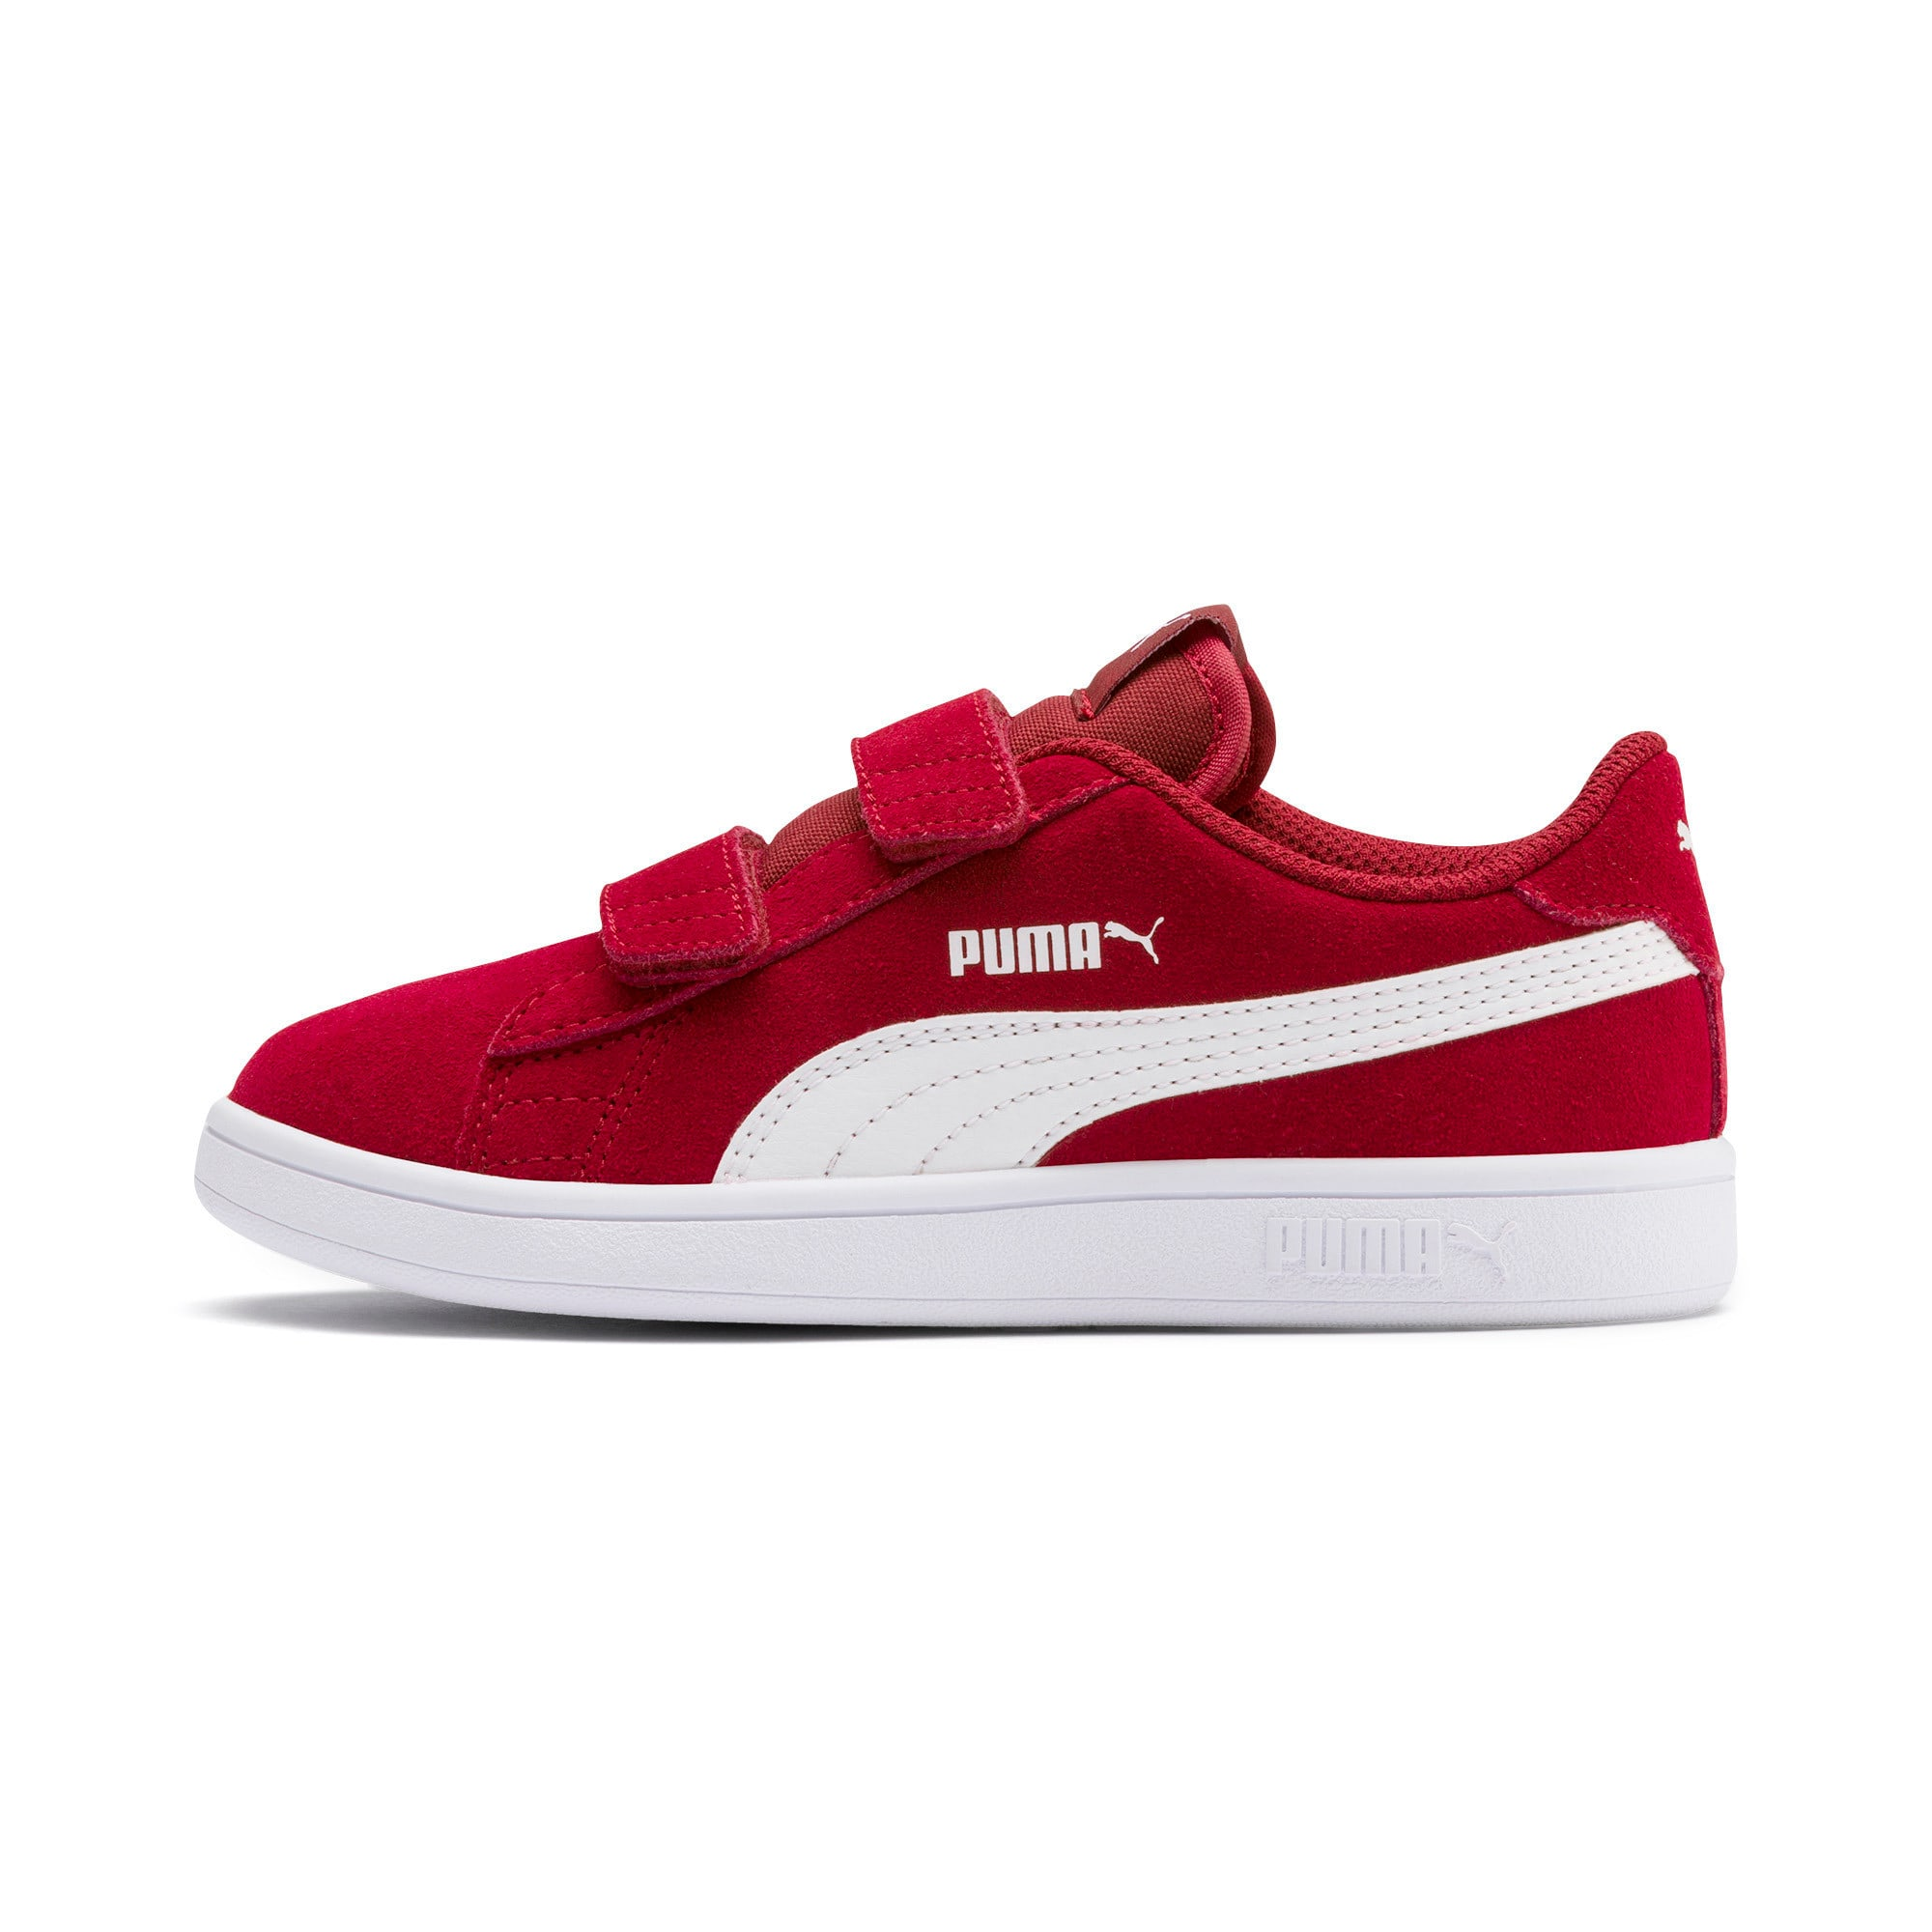 Thumbnail 1 of Smash v2 Suede Little Kids' Shoes, Rhubarb-Puma White, medium